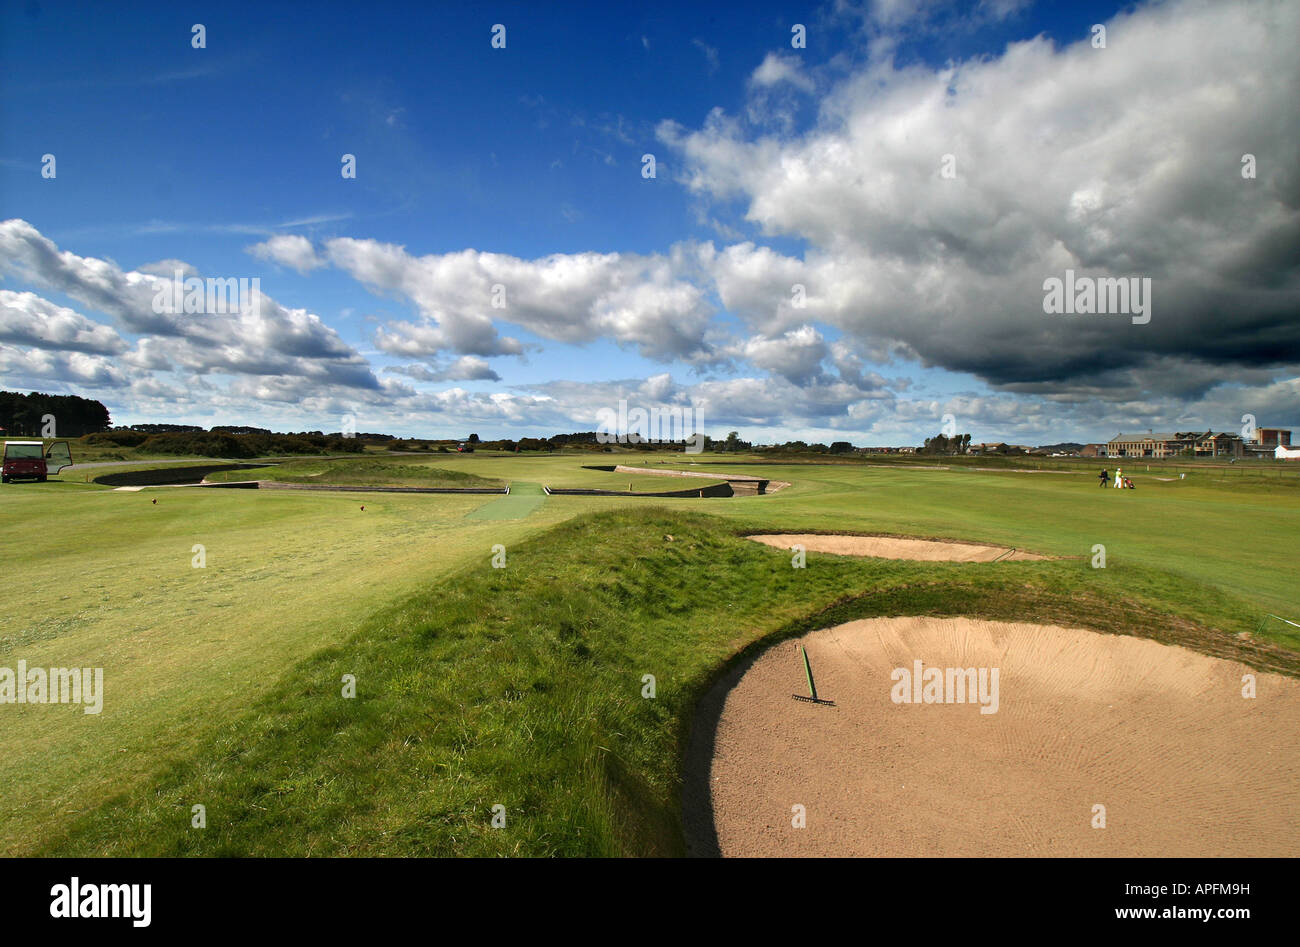 Carnoustie Championship Golf Links 17th Hole - Stock Image